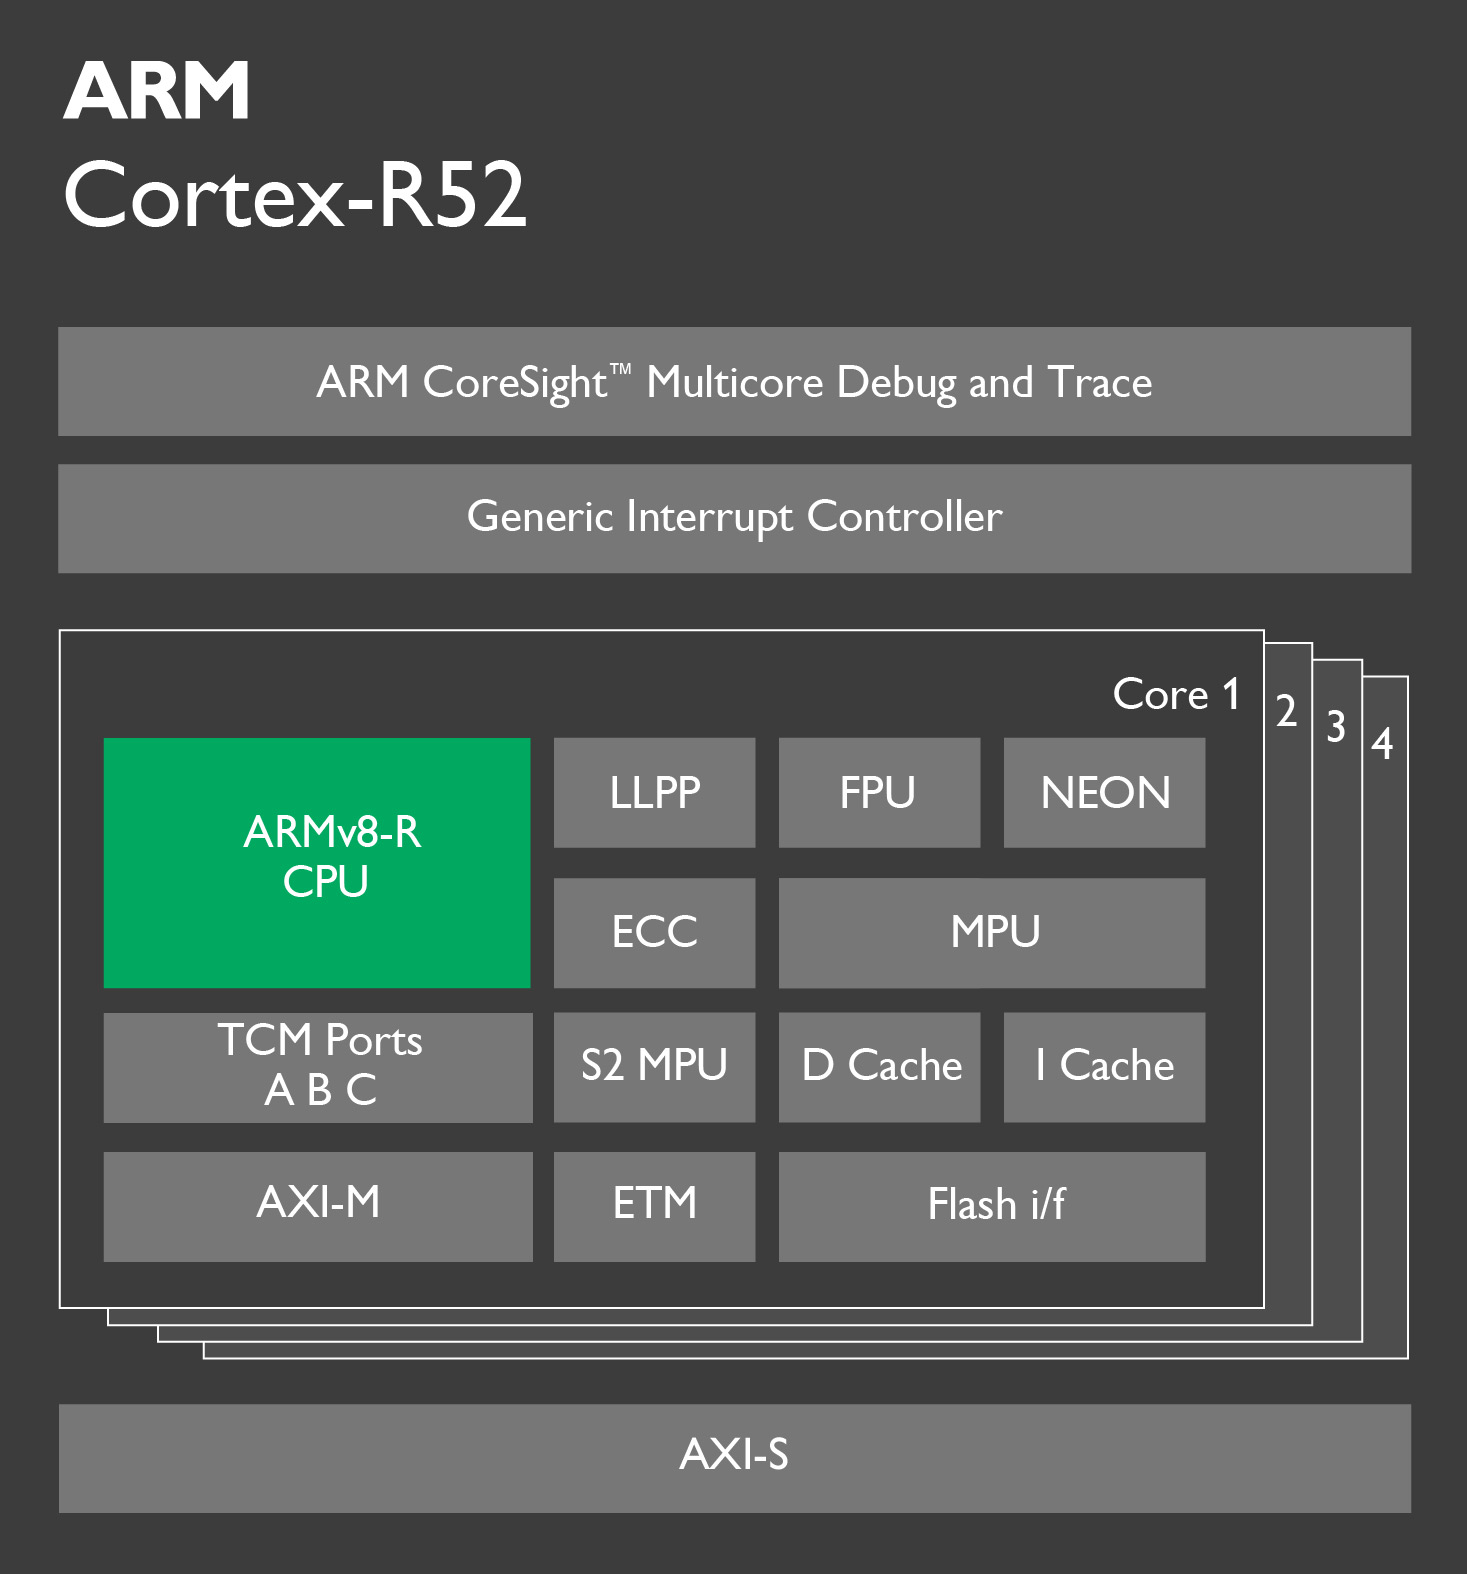 ARM Cortex-R52 explained